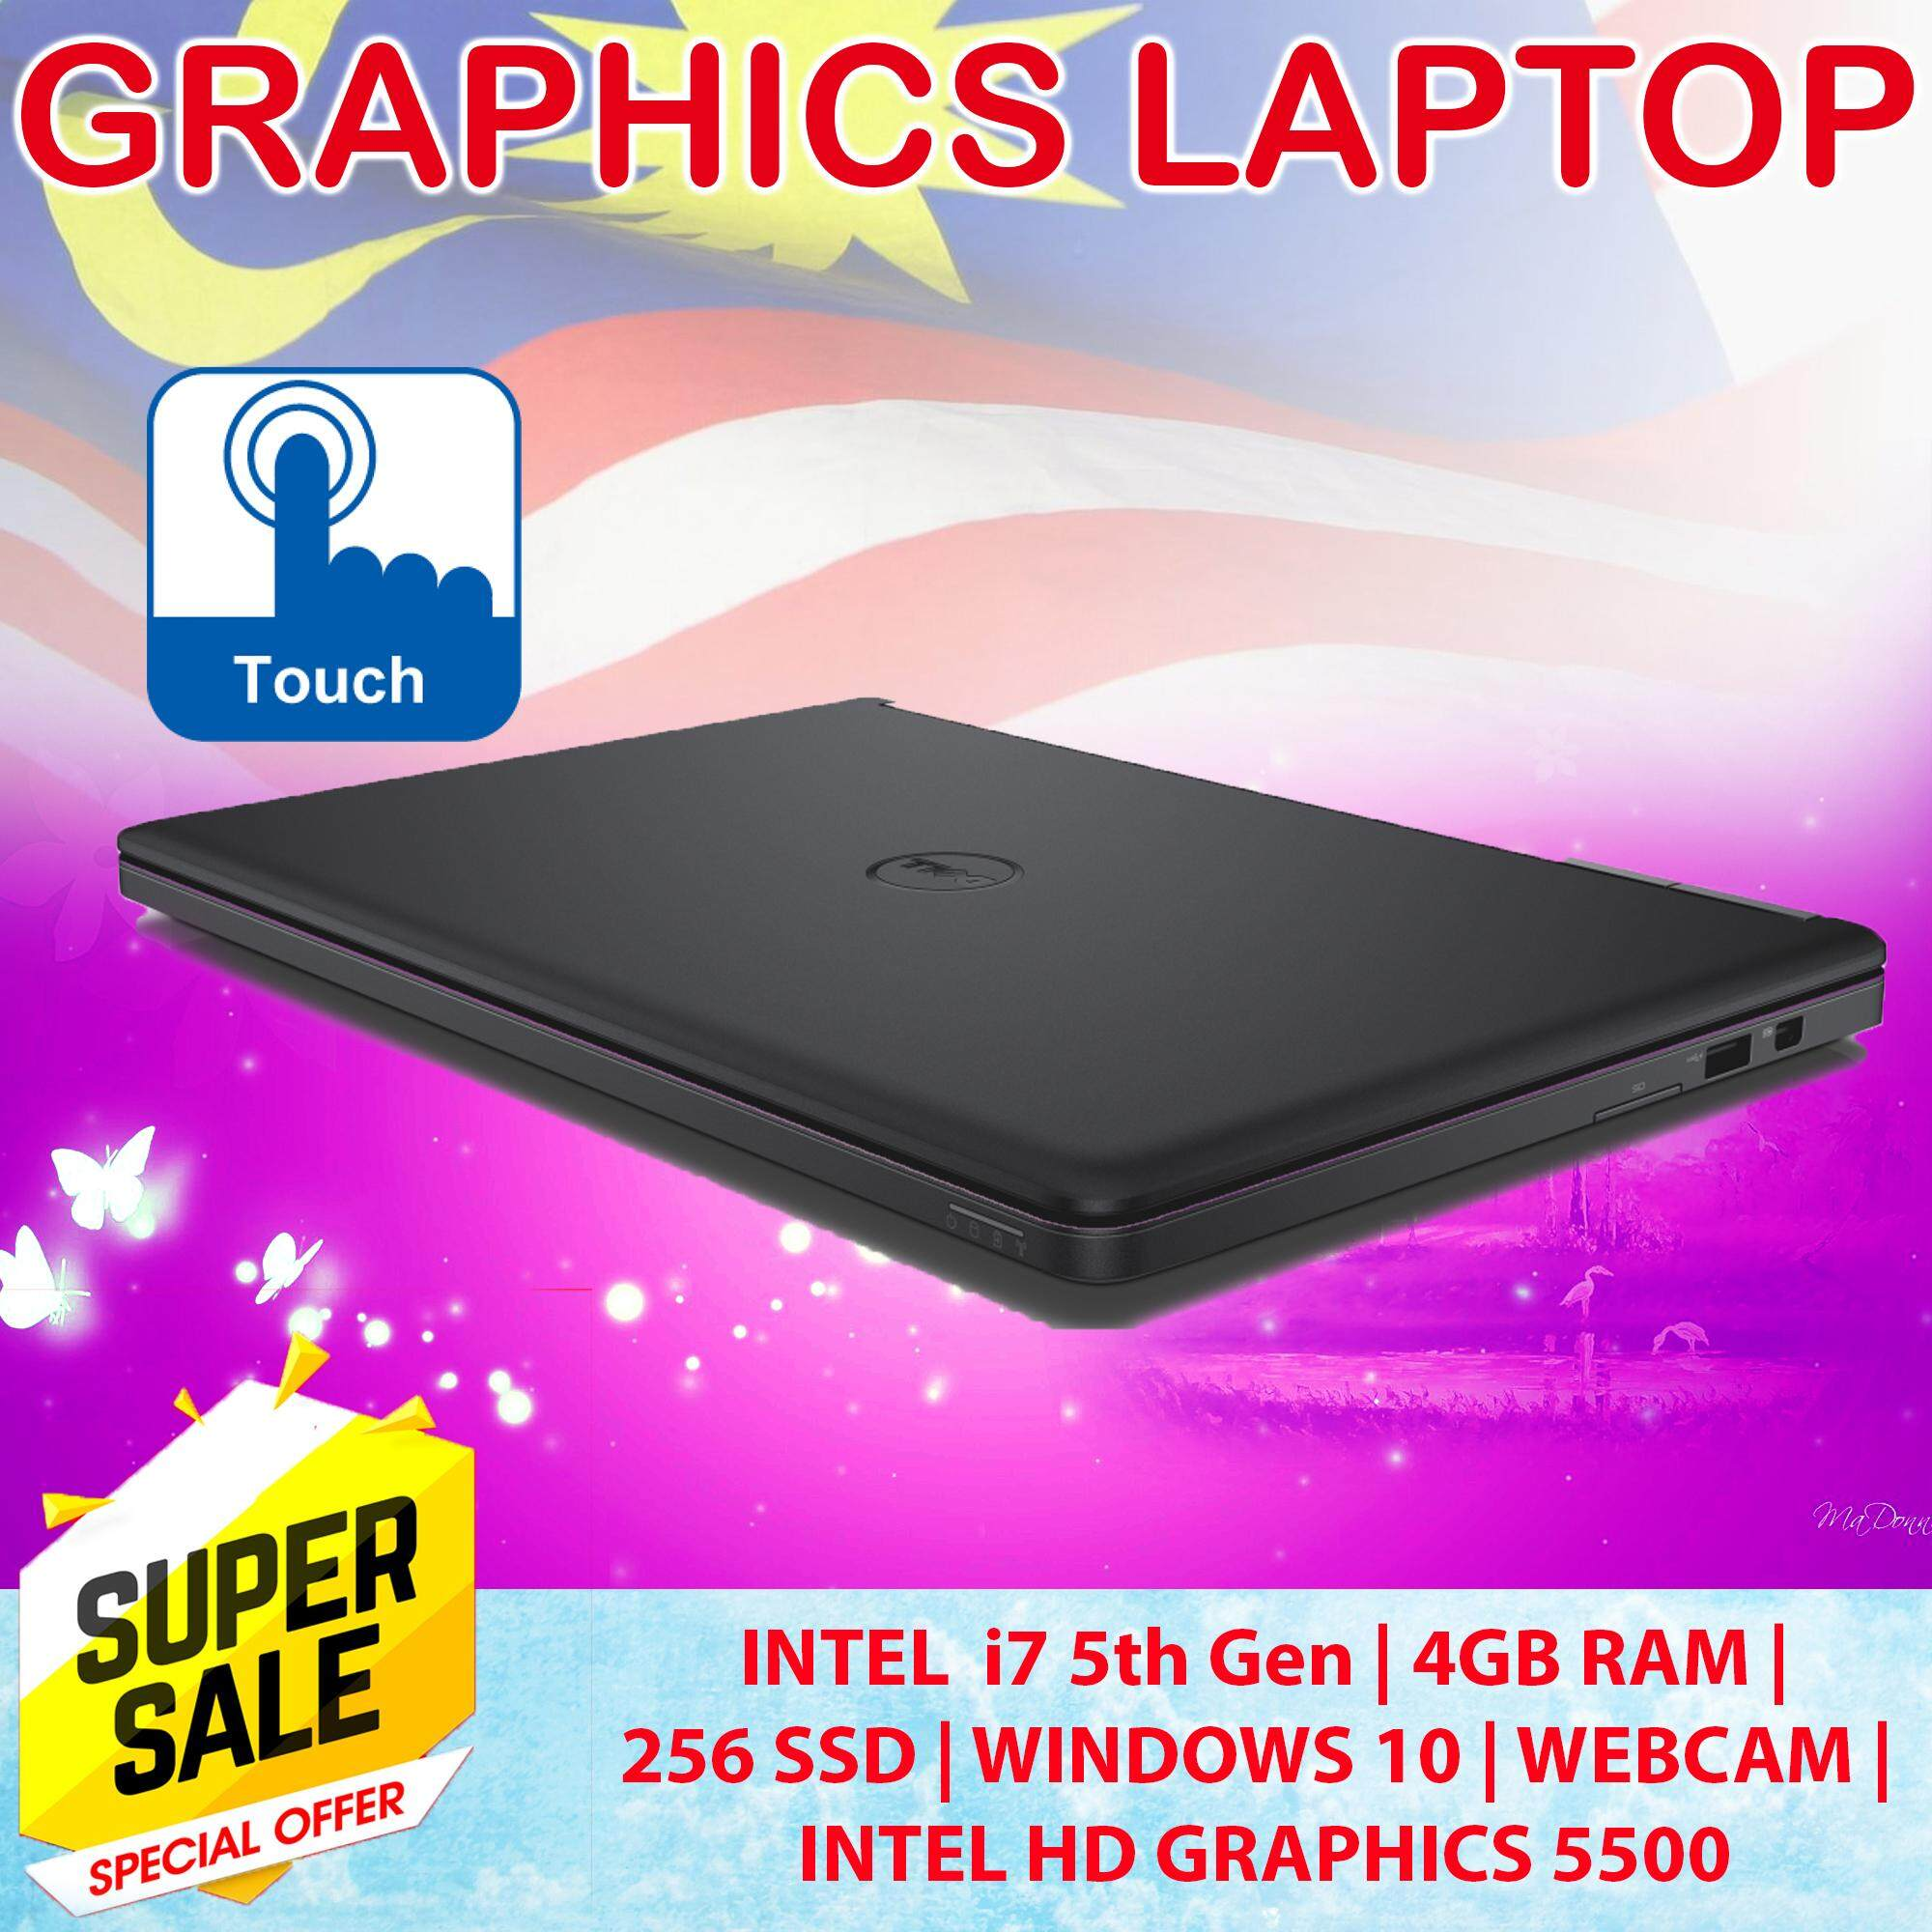 Dell Slim Graphic (TouchScreen) Laptop E5250 - intel  i7 5th Gen, 4GB RAM, 256Gb SSD , Intel HD Graphics 5500, 6 Months Warranty - Free Bag + Free items Malaysia